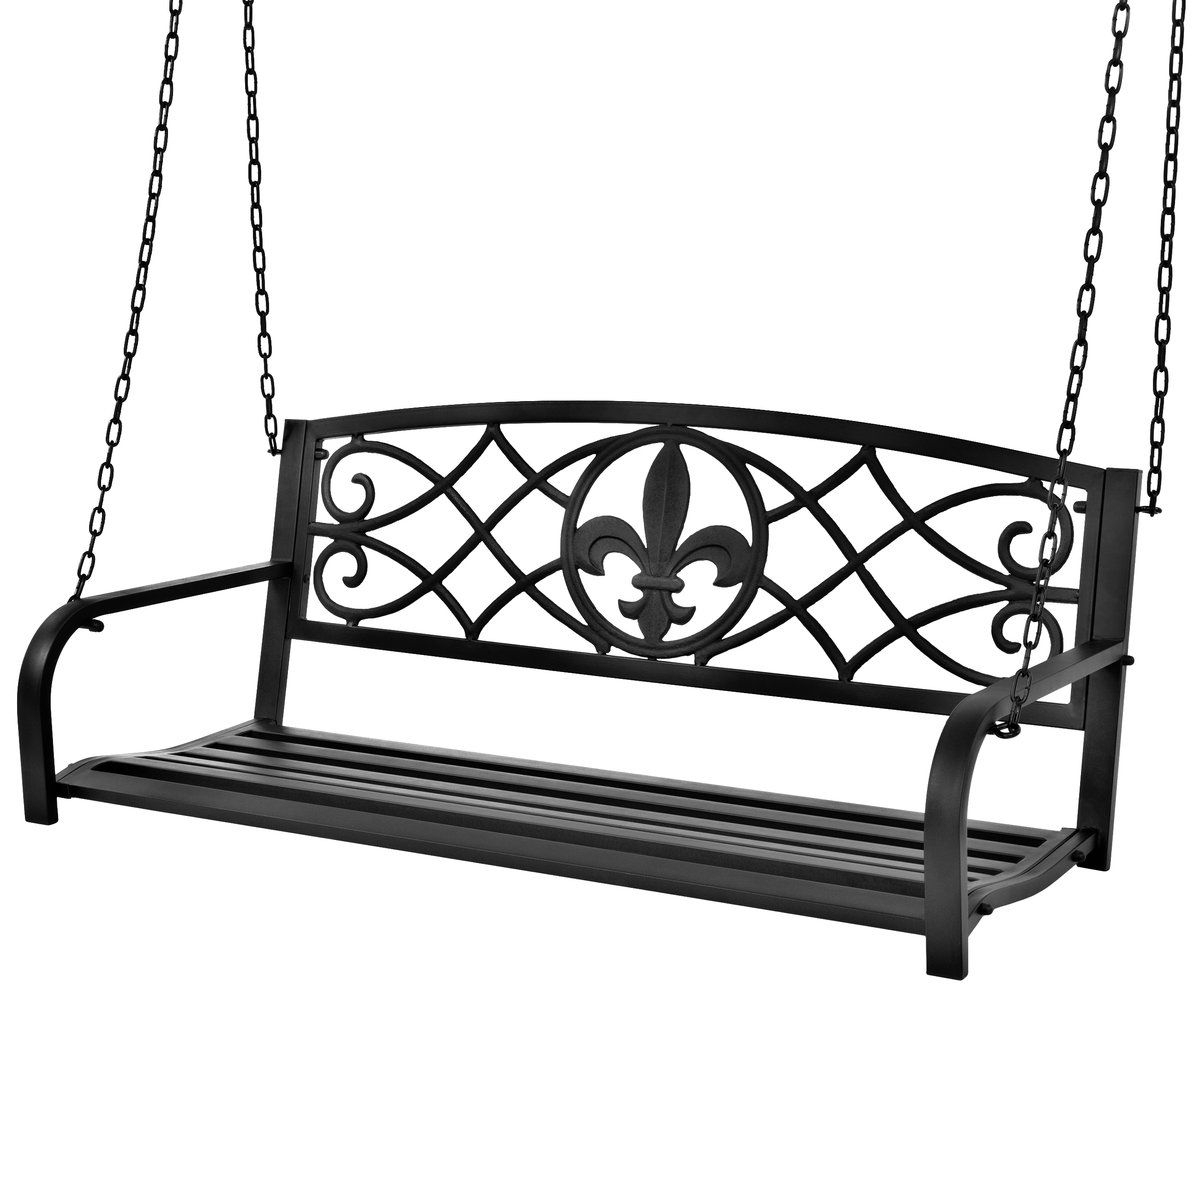 2020 Outdoor Metal Hanging 2 Person Swing Bench W/ Fleur De Lis Throughout Vineyard 2 Person Black Recycled Plastic Outdoor Swings (View 2 of 25)